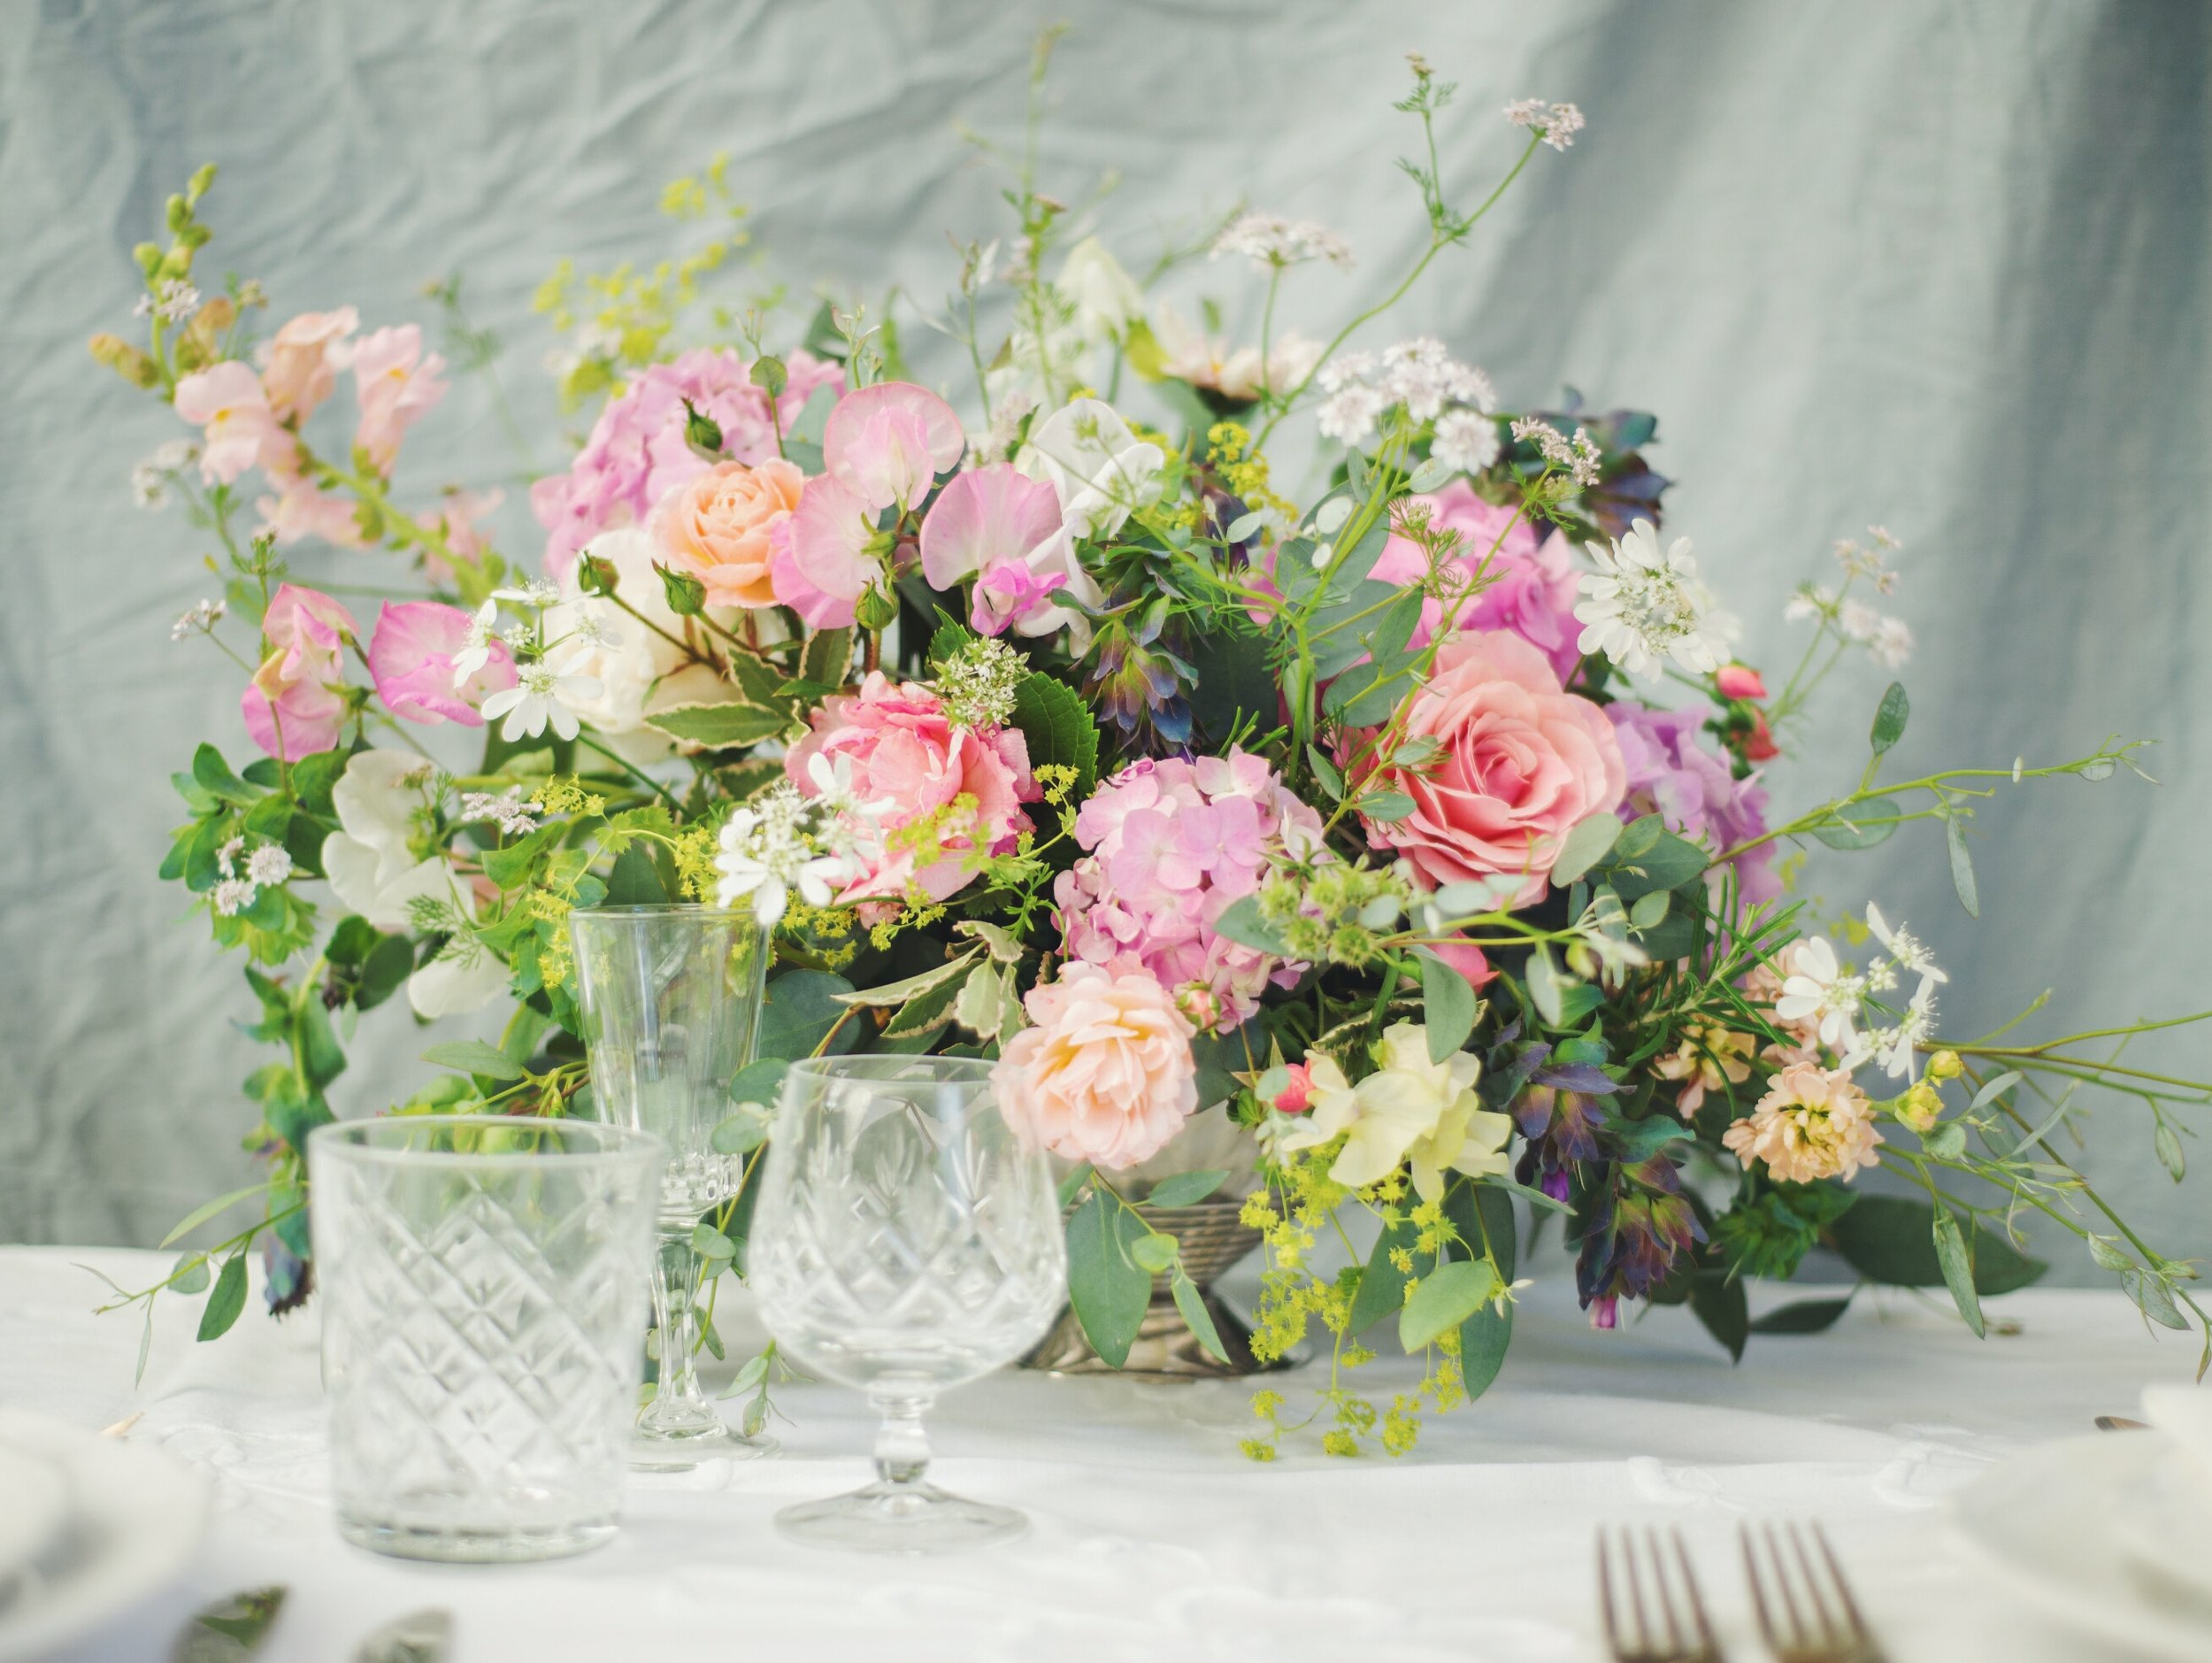 Pink hydrangeas cut early in the season when still quite small, garden roses and sweet peas - June in a bowl!